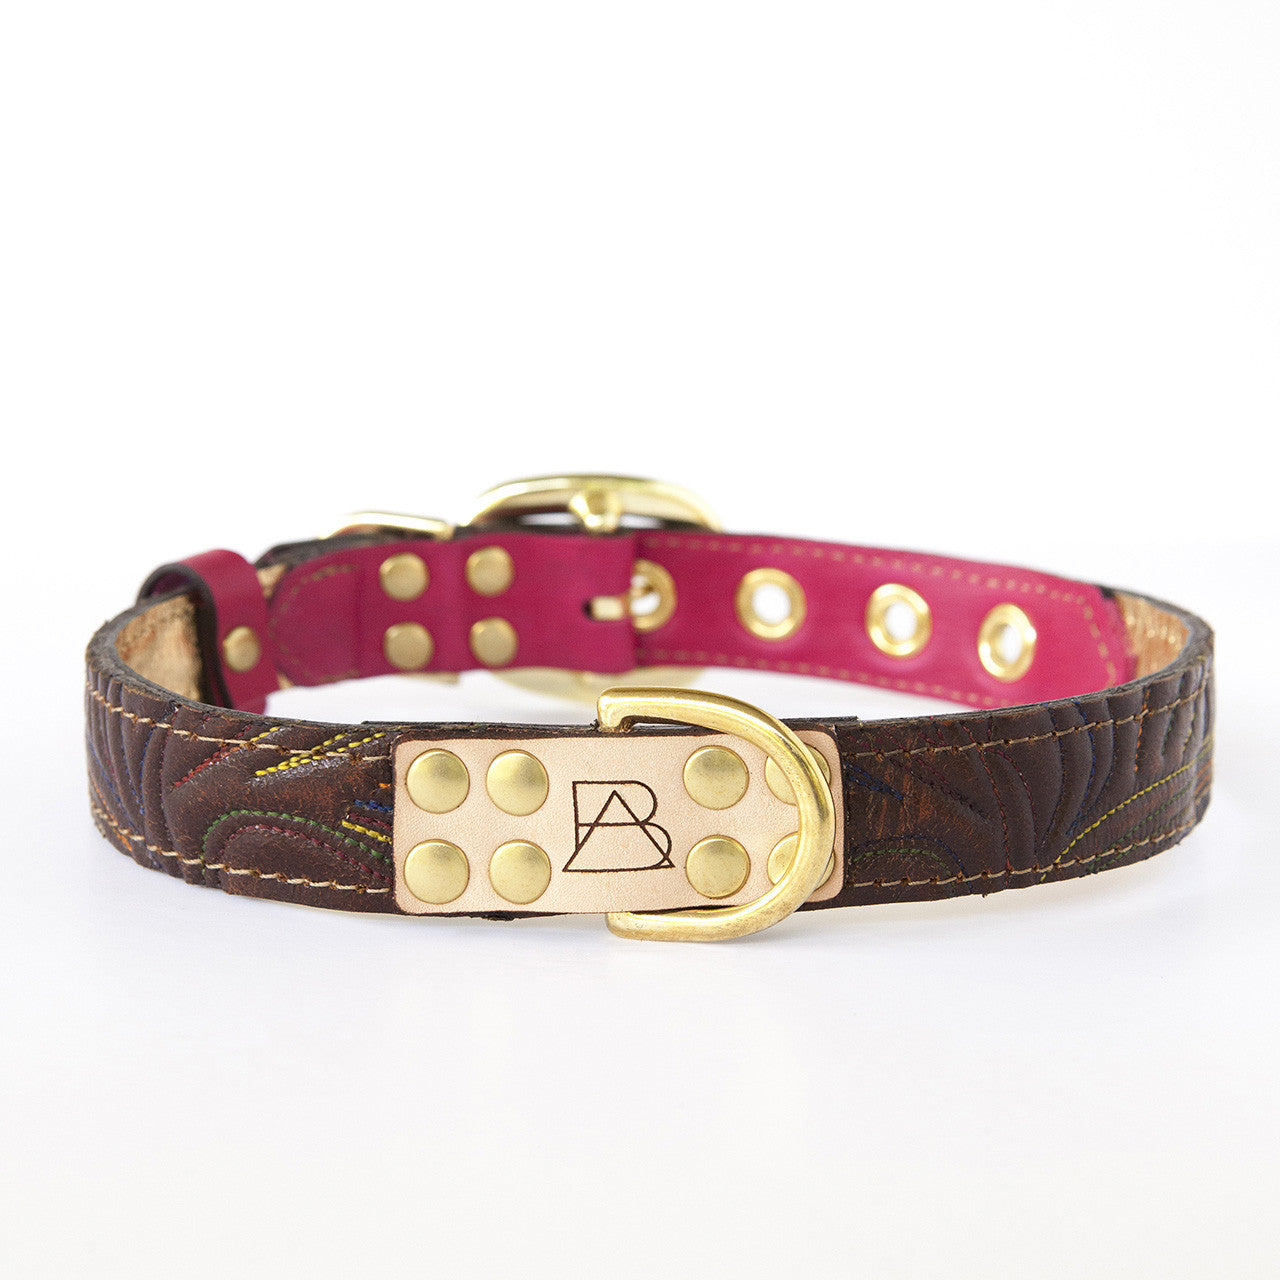 Hot Pink Dog Collar with Dark Brown Leather + Multicolor Stitching (front view)